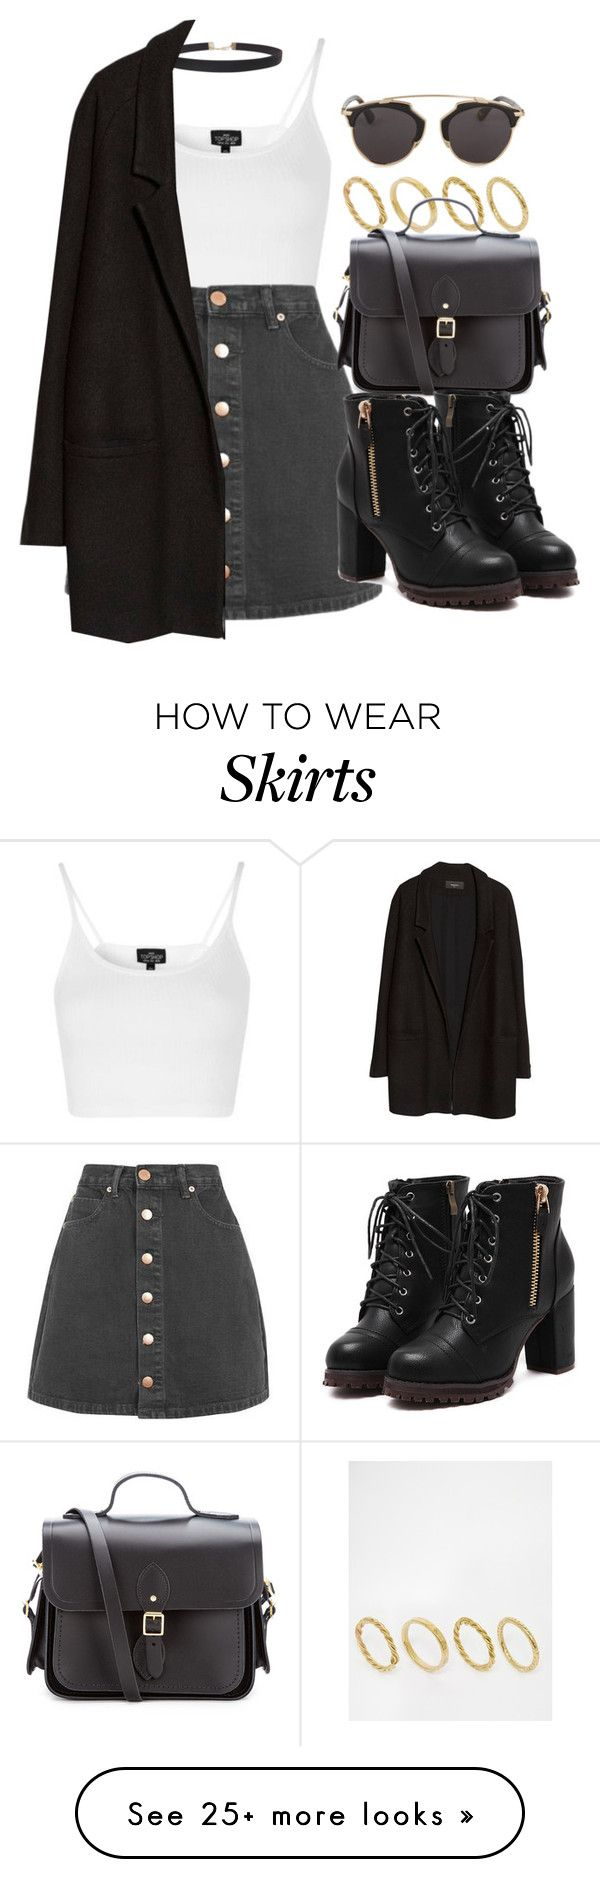 """Style #11762"" by vany-alvarado on Polyvore featuring Topshop, Humble Chic, Glamorous, MANGO, Made, The Cambridge Satchel Company and Christian Dior"